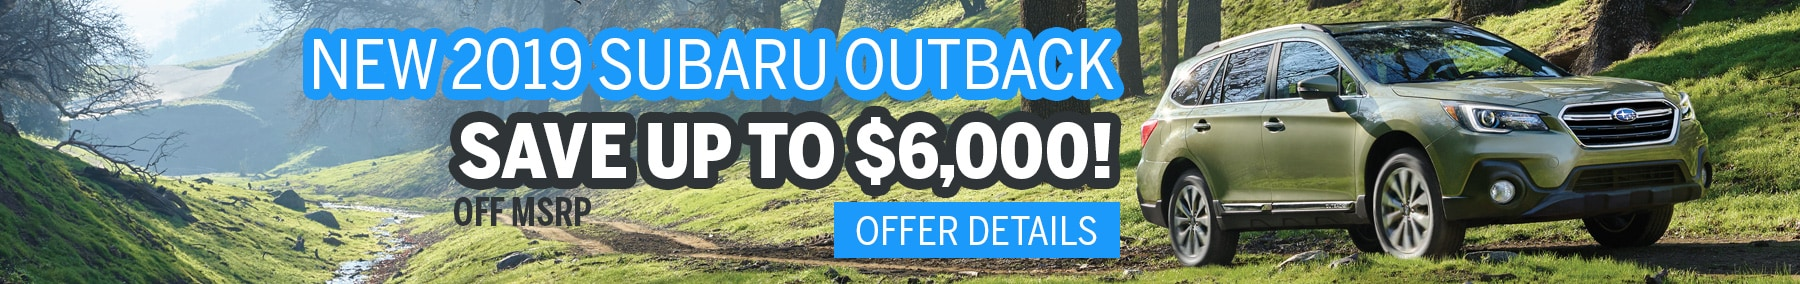 Save up to $6000 on a New Outback